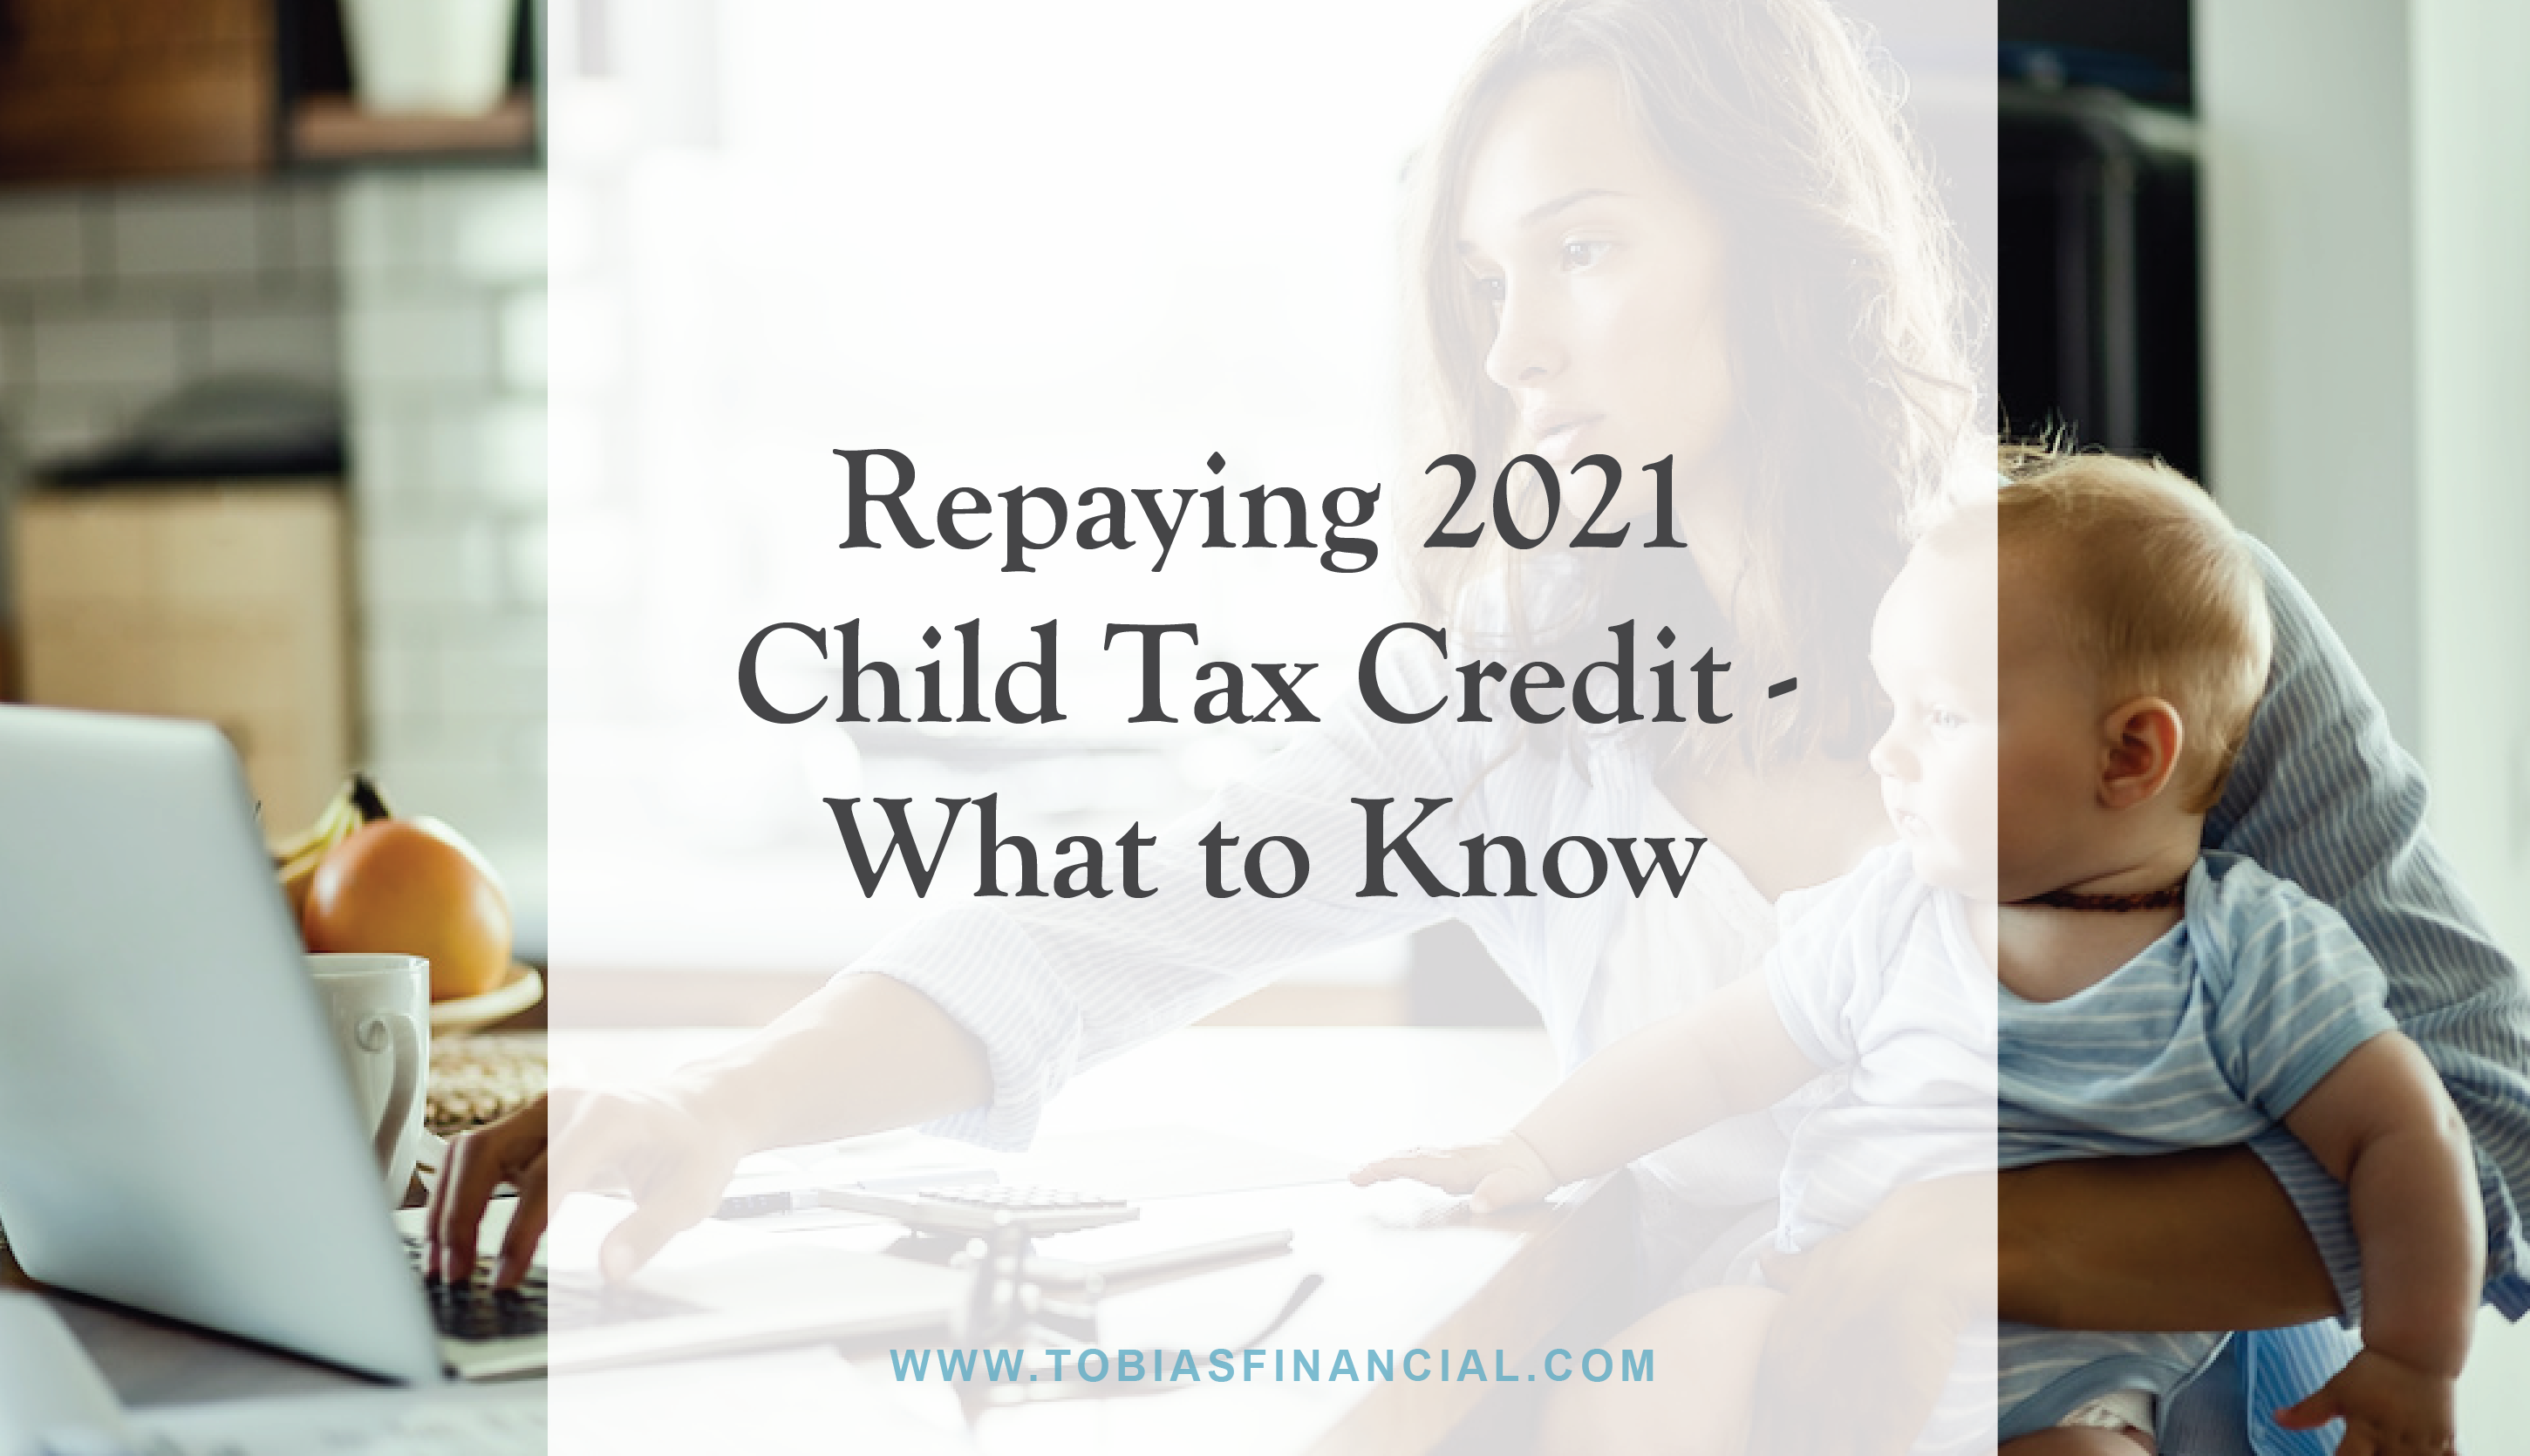 Repaying 2021 Child Tax Credit – What to Know